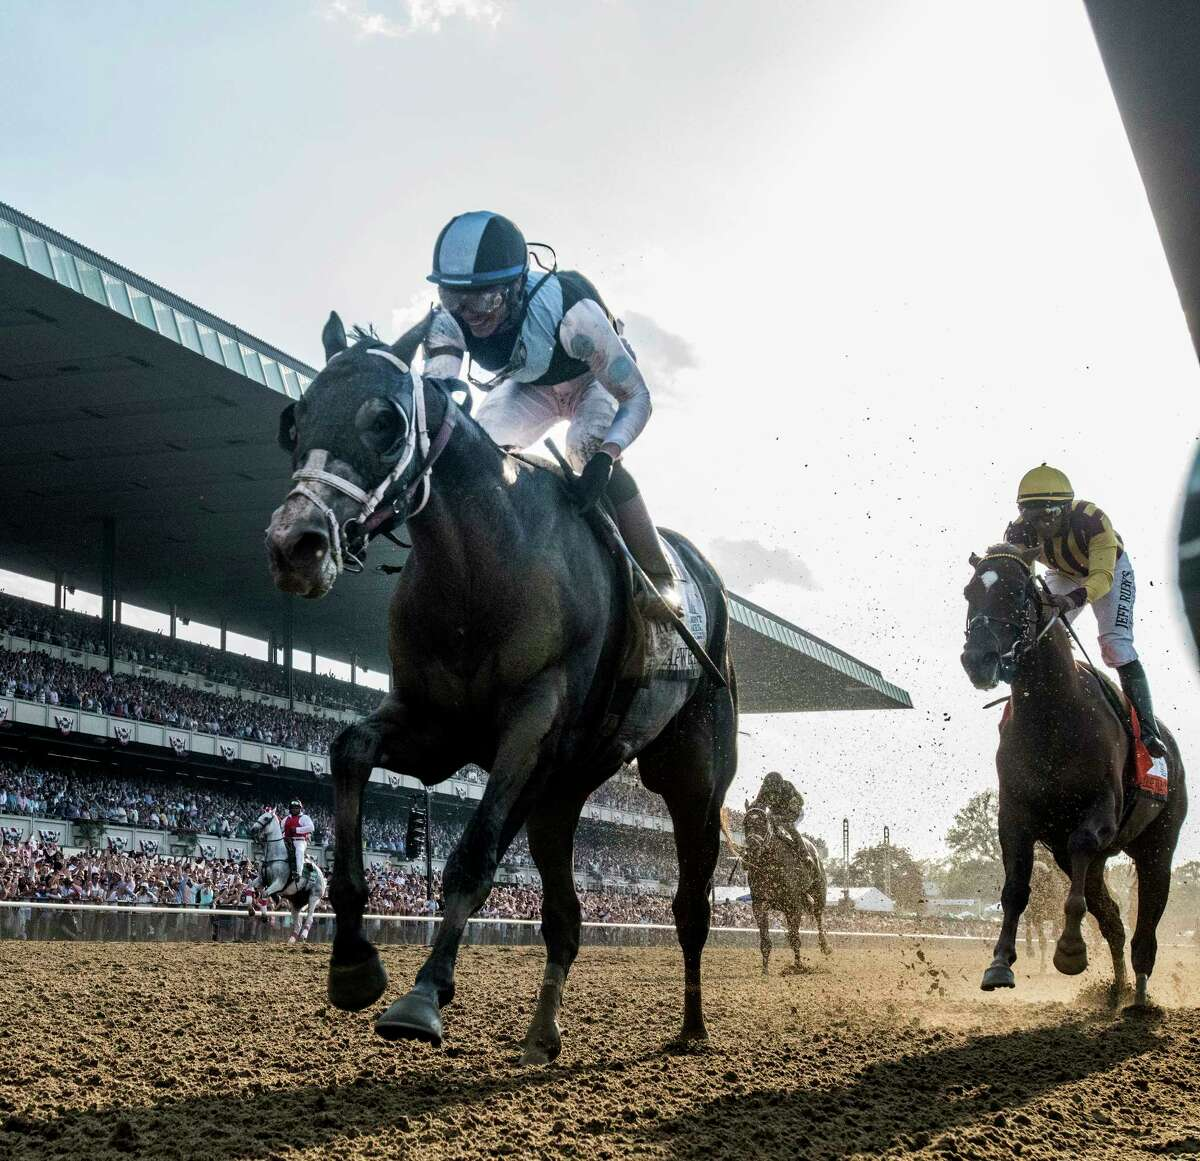 Tapwrit ridden by Jose Ortiz, left passes Irish War Cry ridden by Rajiv Maragh to the win in the 149th running of the Belmont Stakes at Belmont Park June 10, 2017 in Elmont, N.Y. (Skip Dickstein/Times Union)